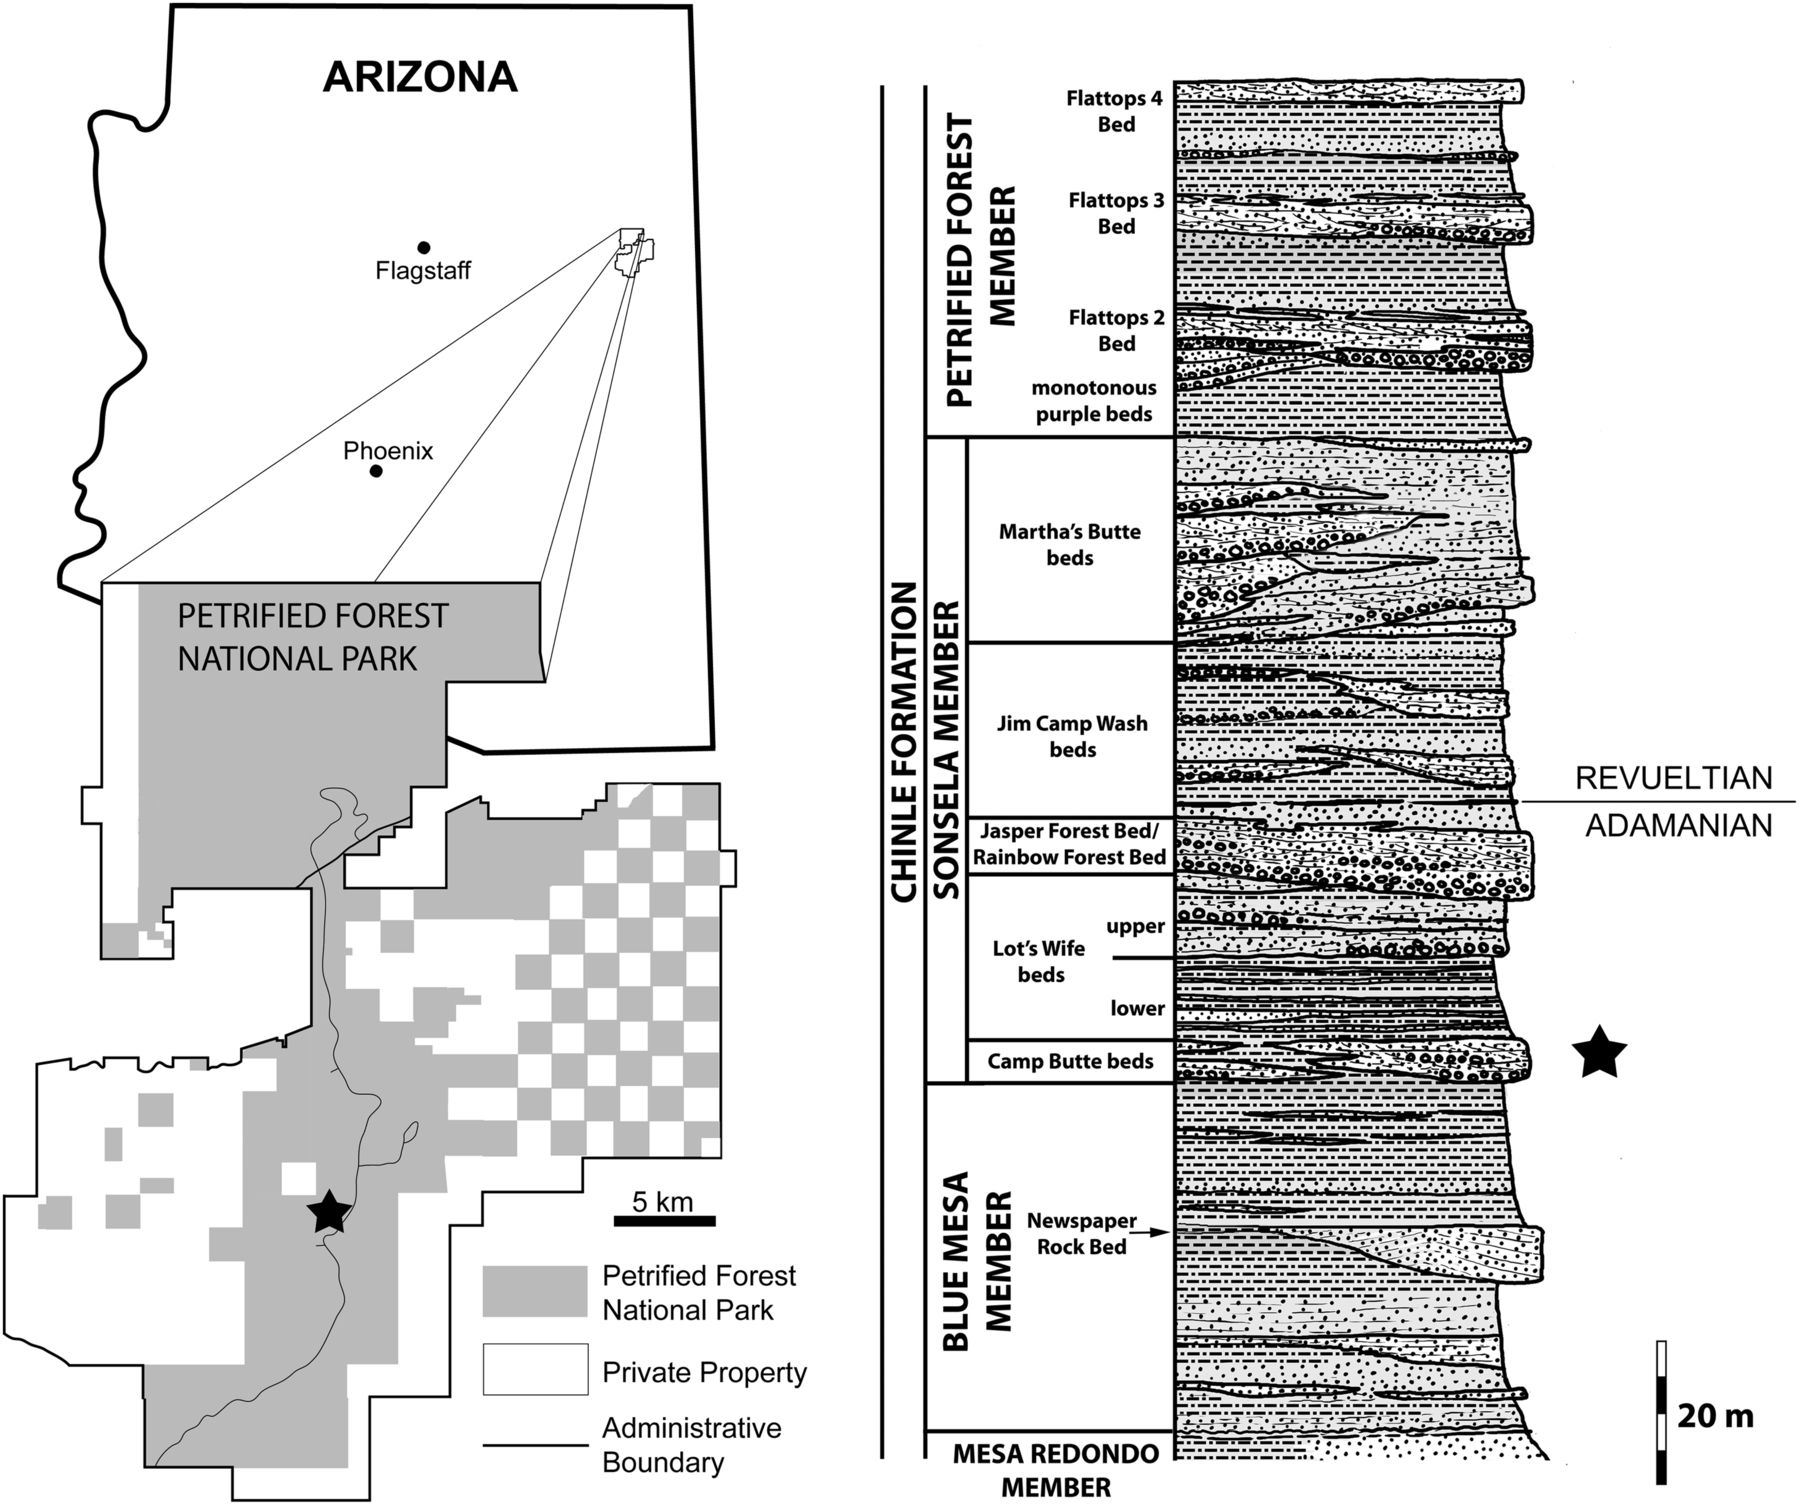 Biostratigraphic dating relies on camp